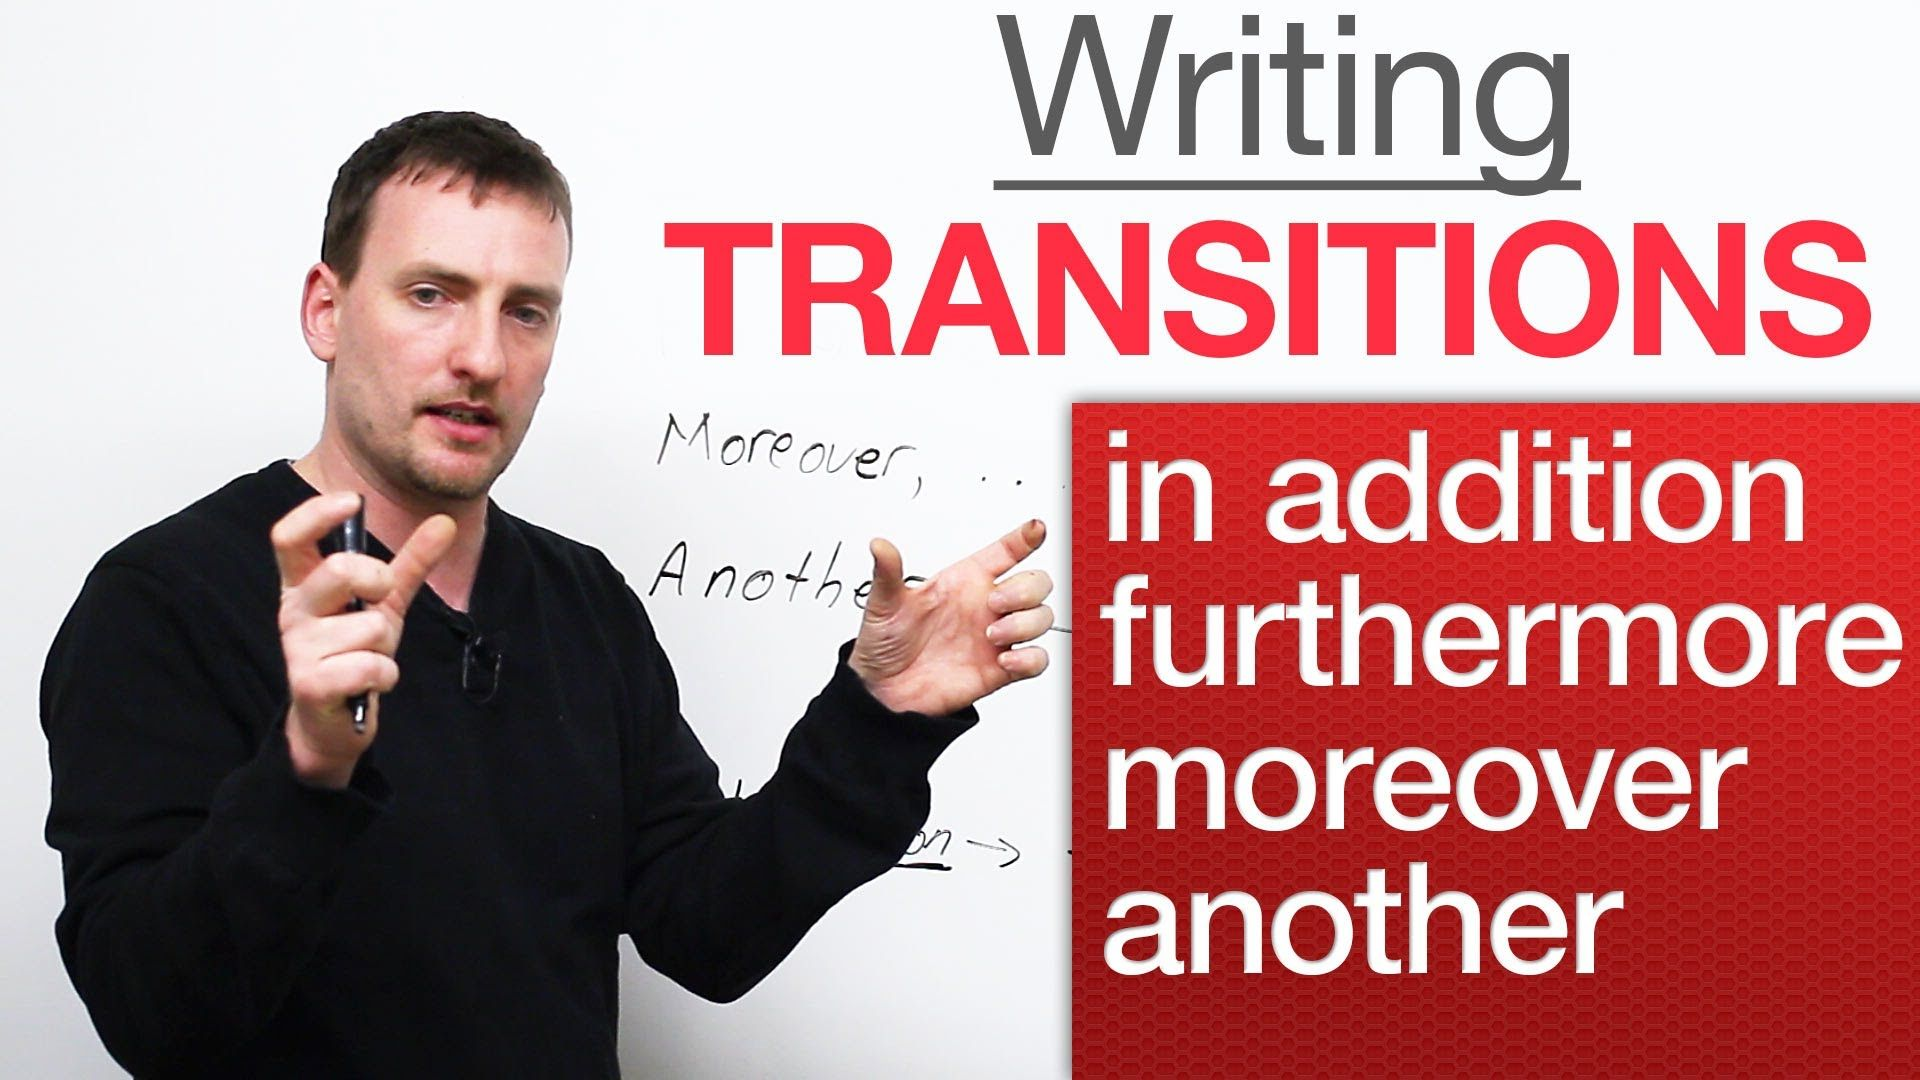 002 Writing Transitions in addition, moreover, furthermore